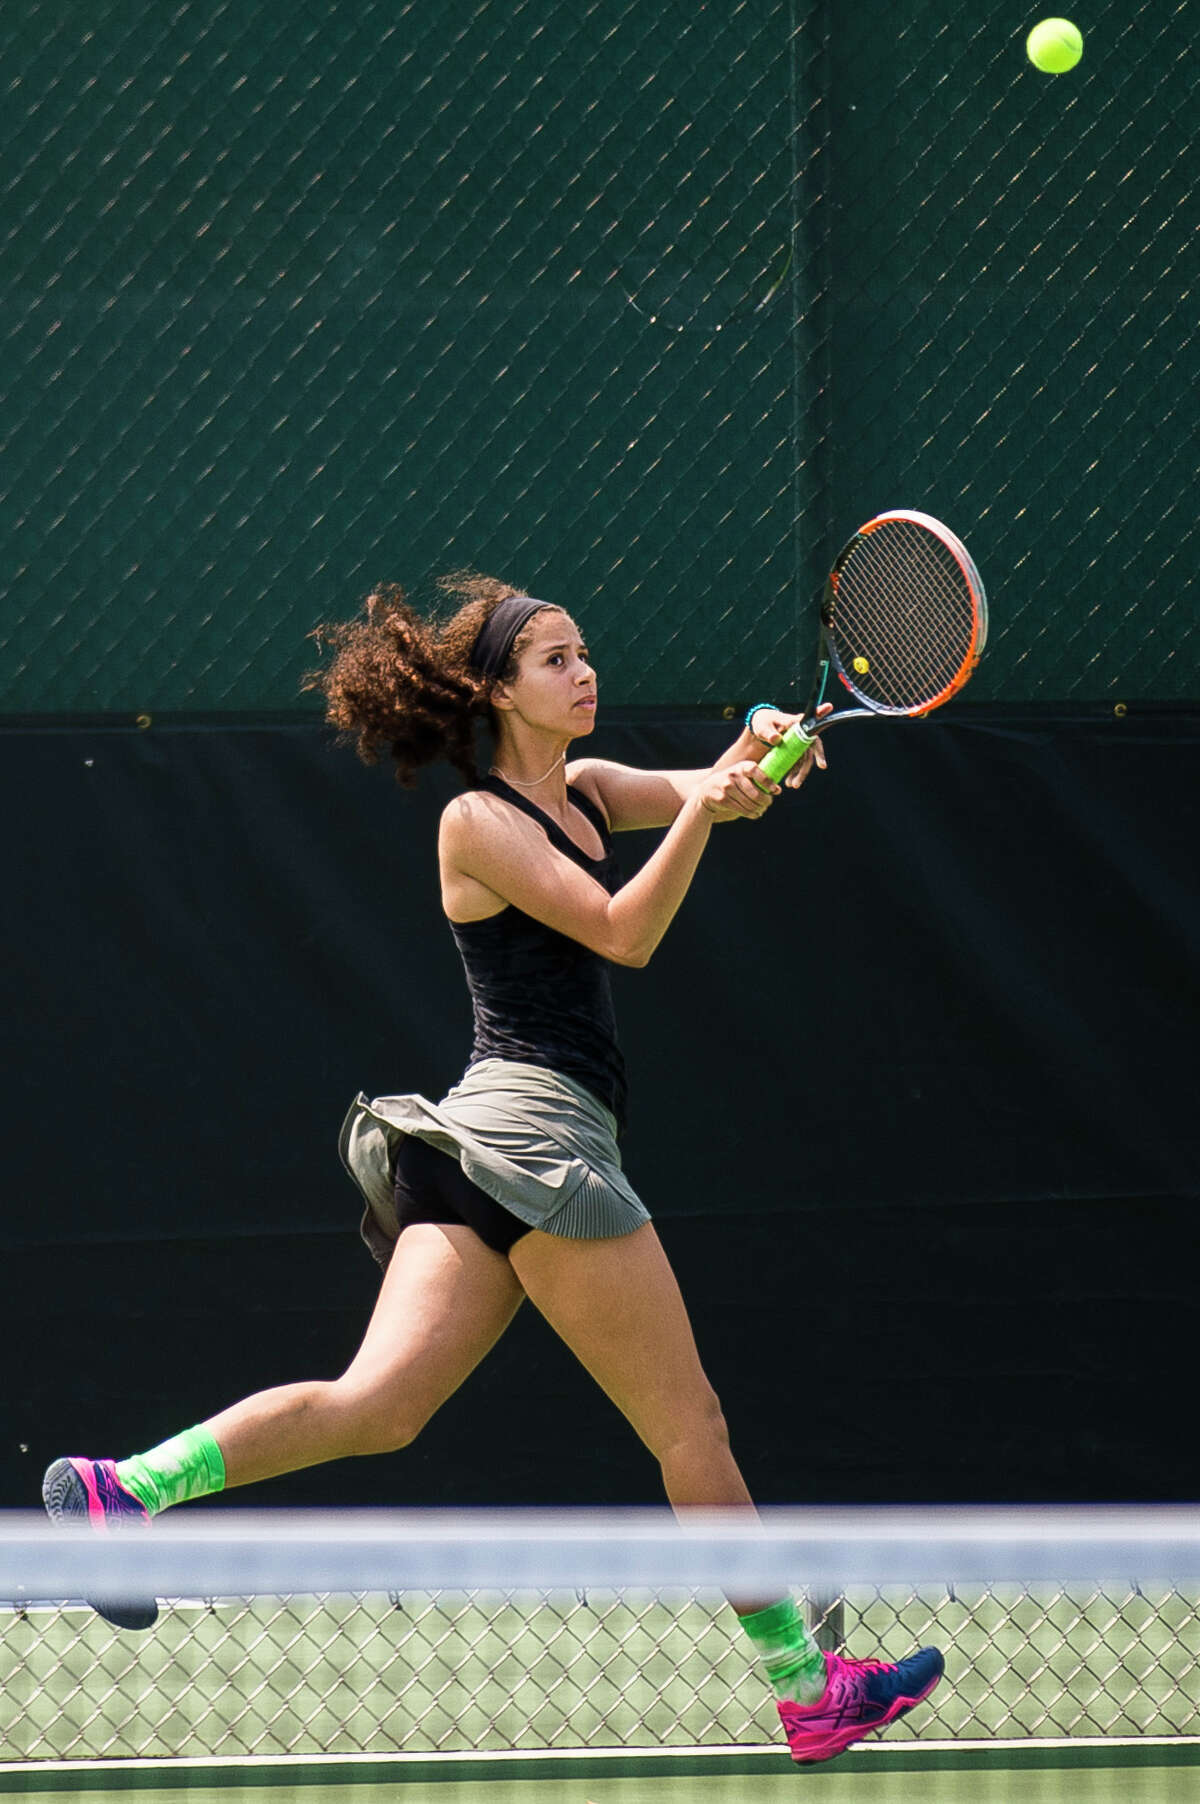 Dow's Salma Elsaadany returns the ball during a #4 doubles match in the Division 1 state tennis tournament on Friday, May 31, 2019 at the Greater Midland Tennis Center. (Katy Kildee/kkildee@mdn.net)